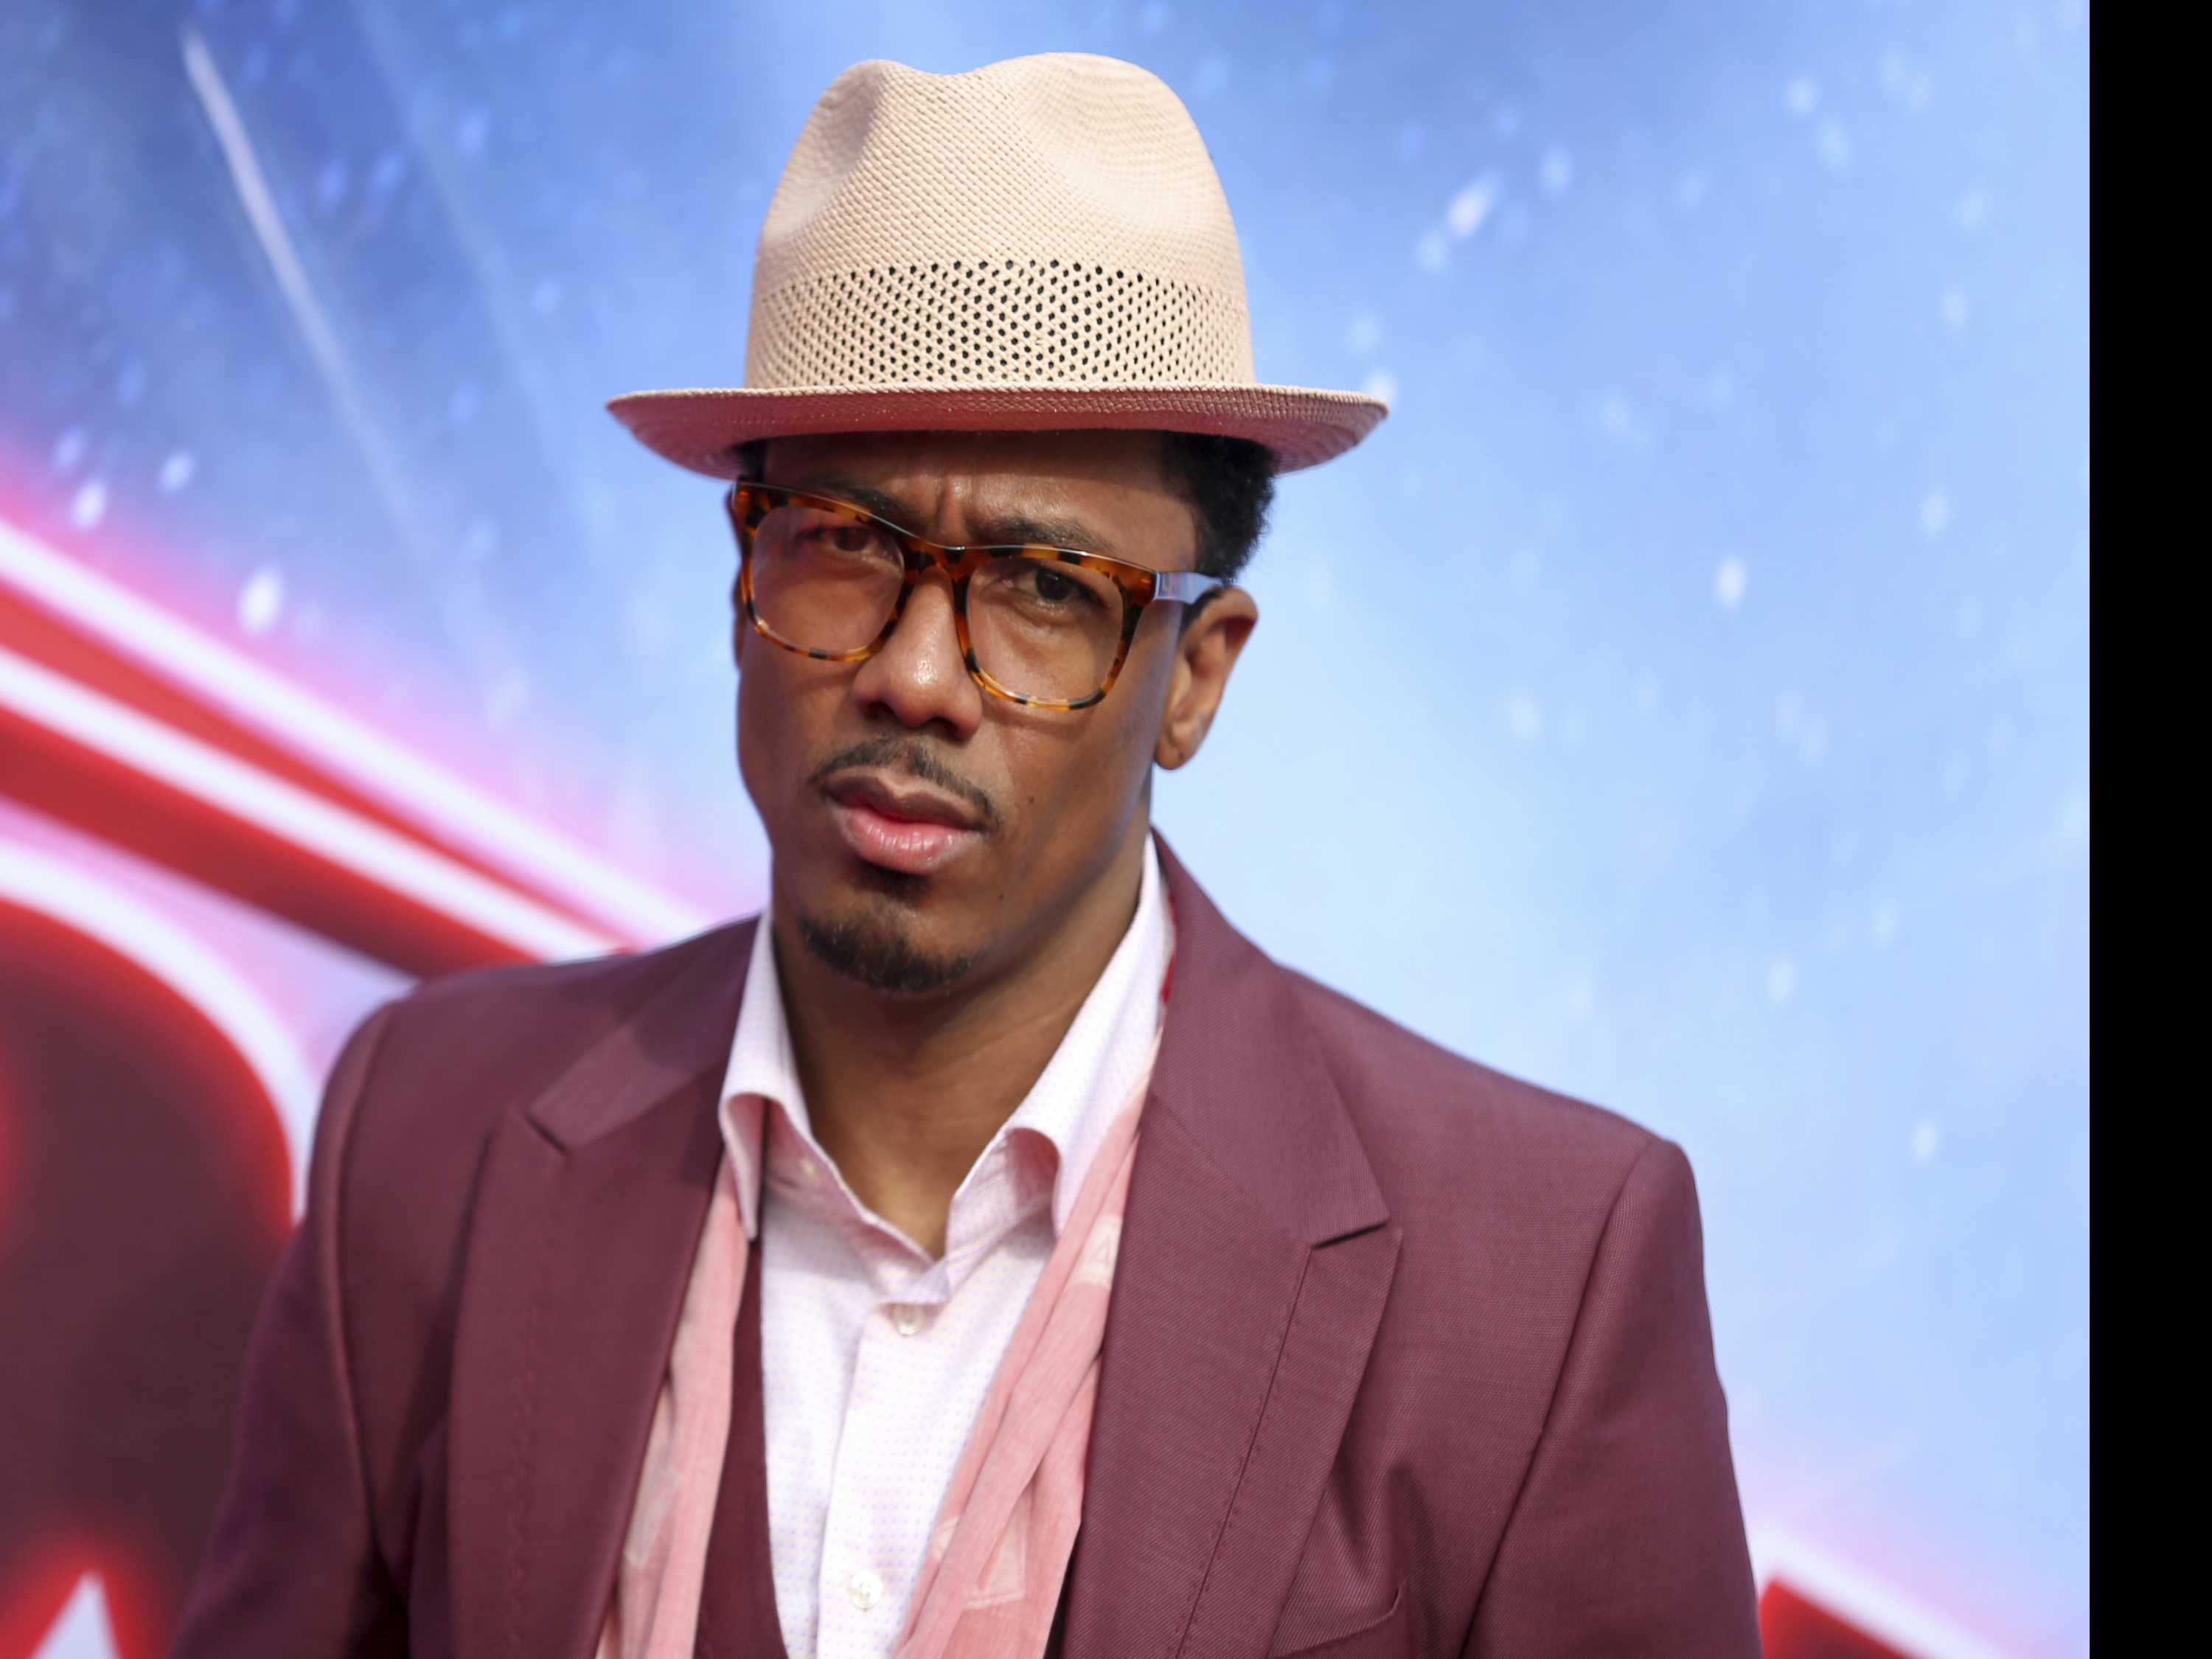 Catholic School Demands Apology From Nick Cannon for Show